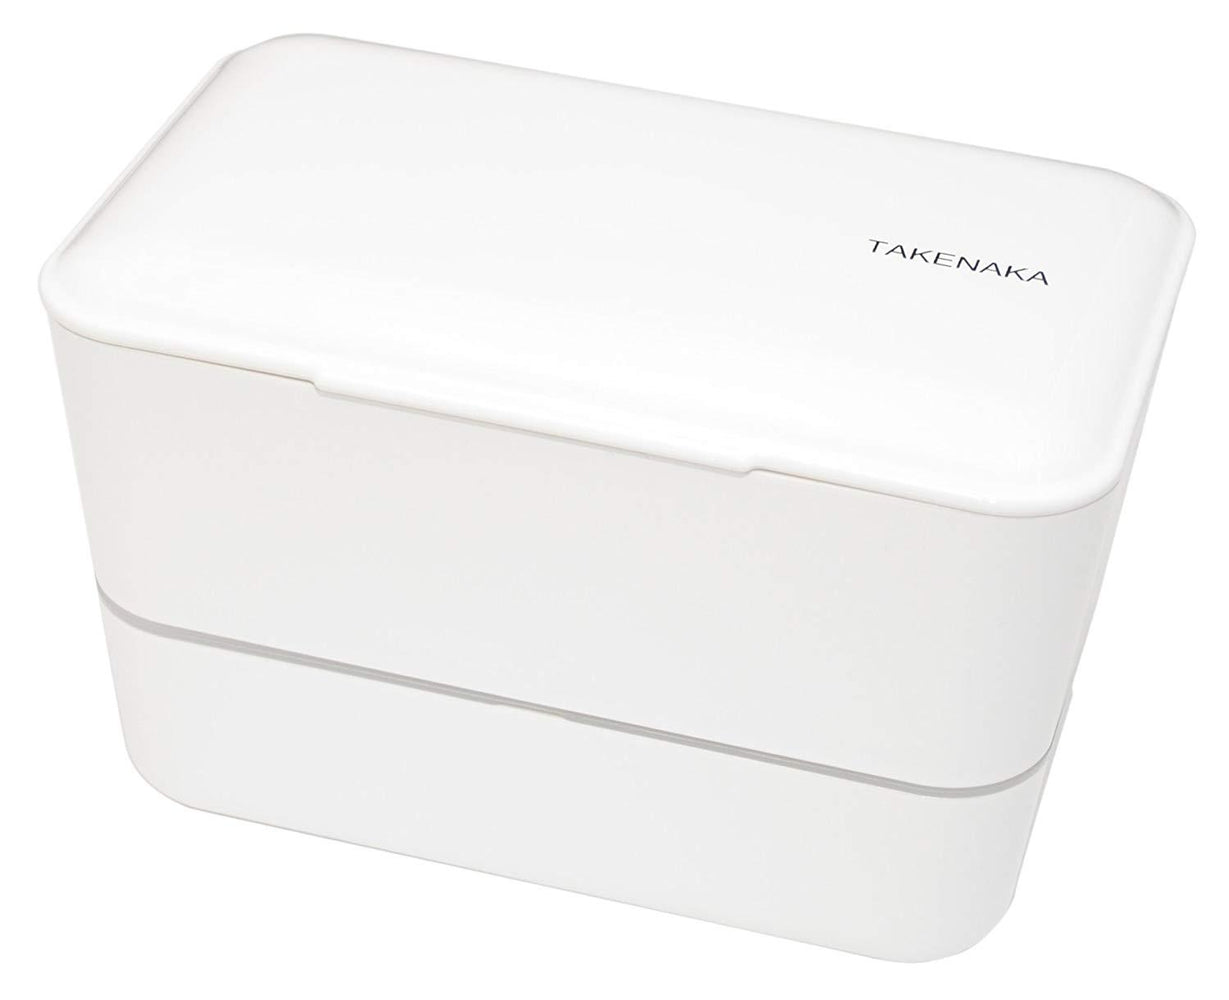 Expanded Double Bento Box | White by Takenaka - Bento&con the Bento Boxes specialist from Kyoto